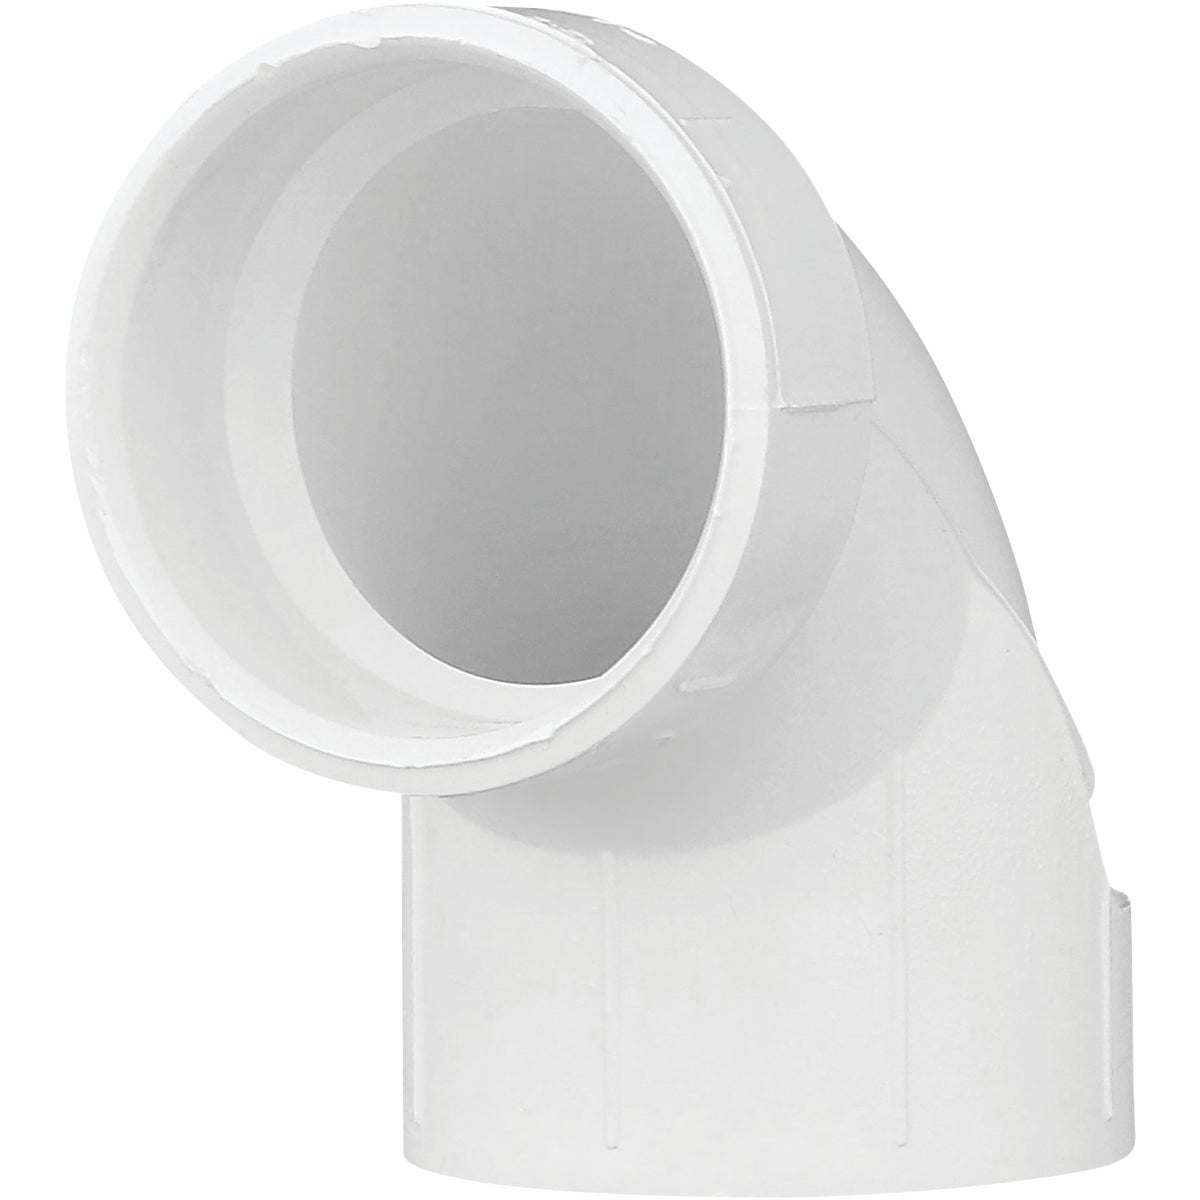 "1-1/2""90D DWV SANI ELBOW - 72815 by Genova Inc  Pvc Dwv"